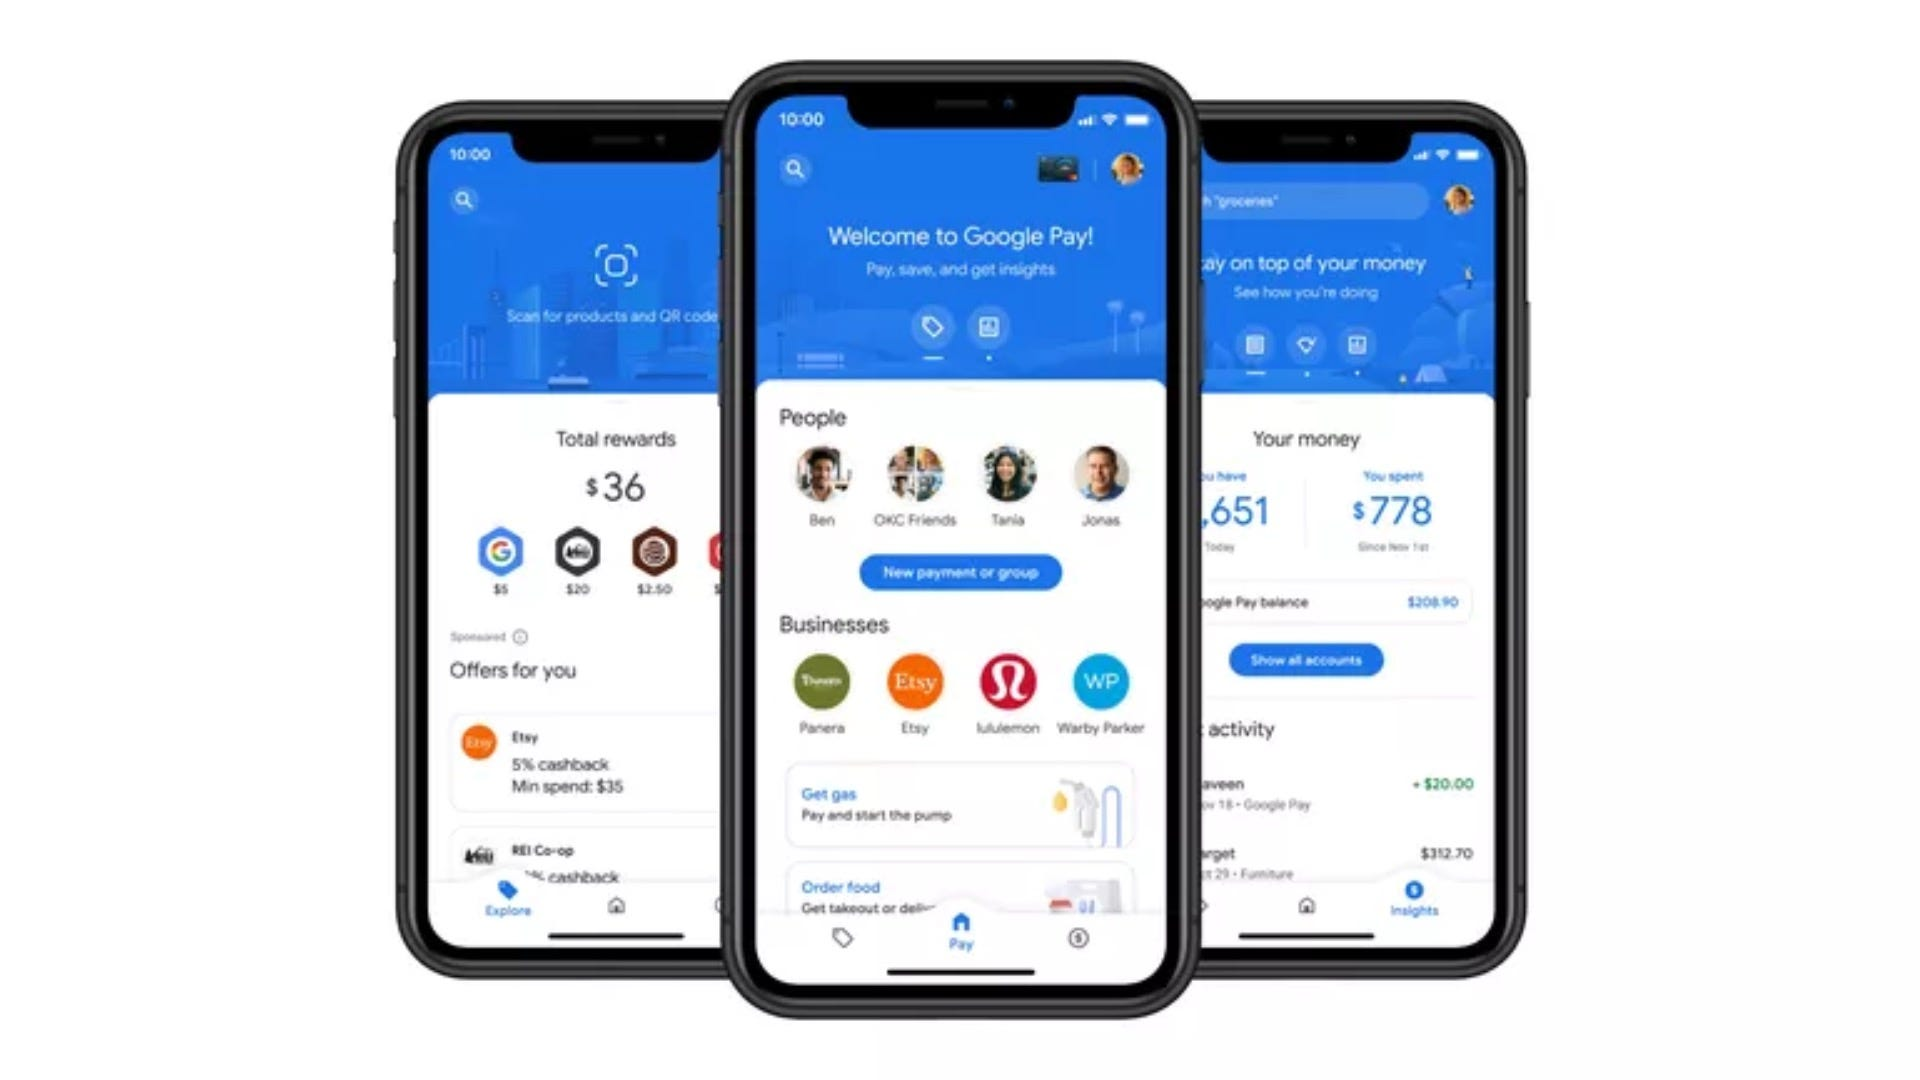 Overview of Google Pay app